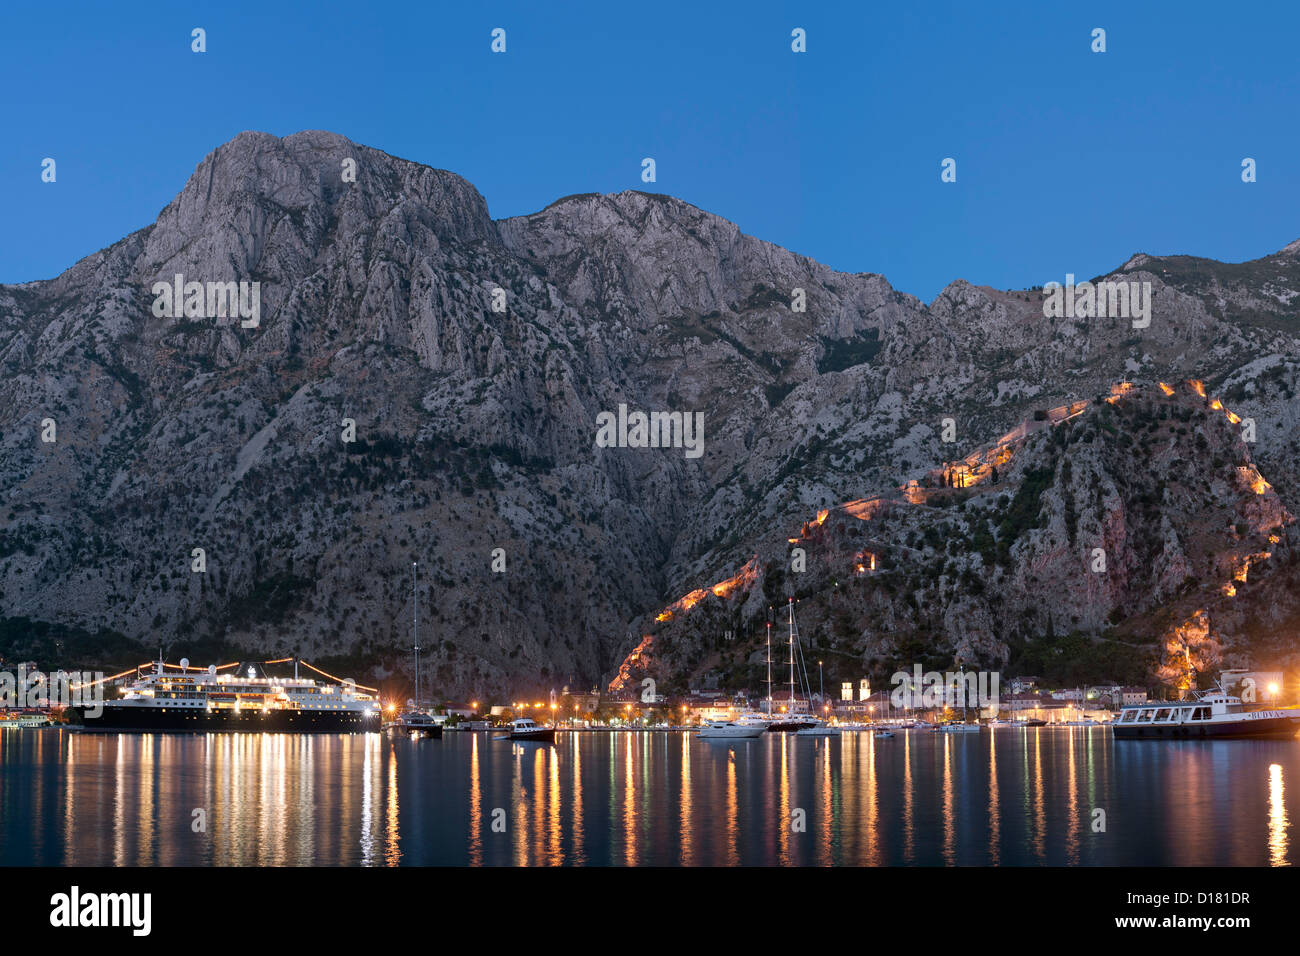 Dusk view of Kotor Bay, Kotor town and the fortifications overlooking the town in Montenegro. - Stock Image